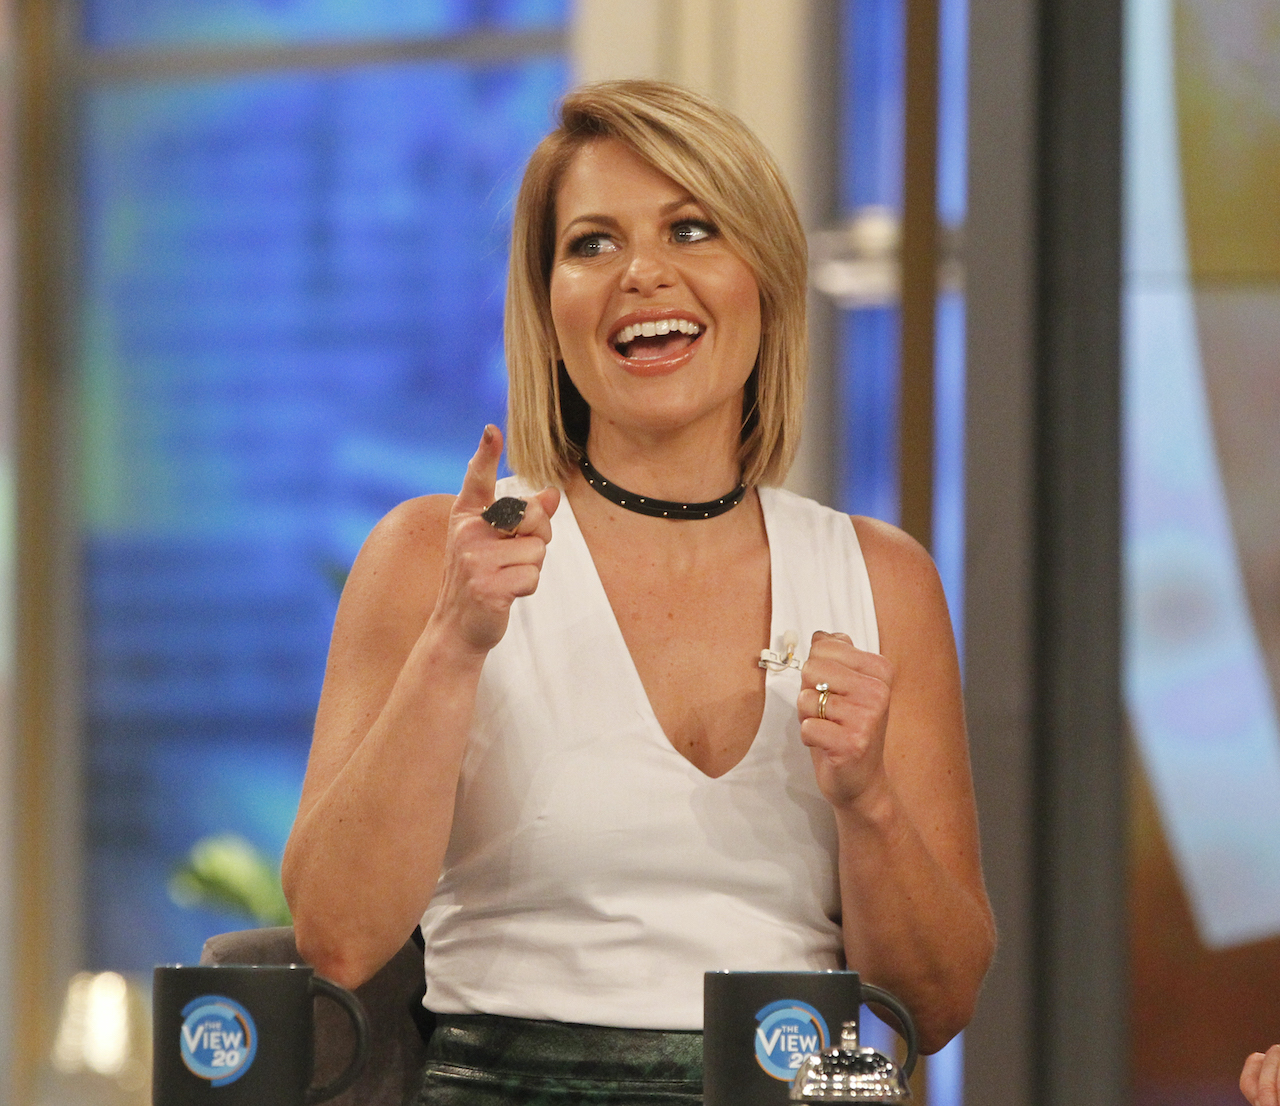 Candace Cameron Bure on the set of 'The View'